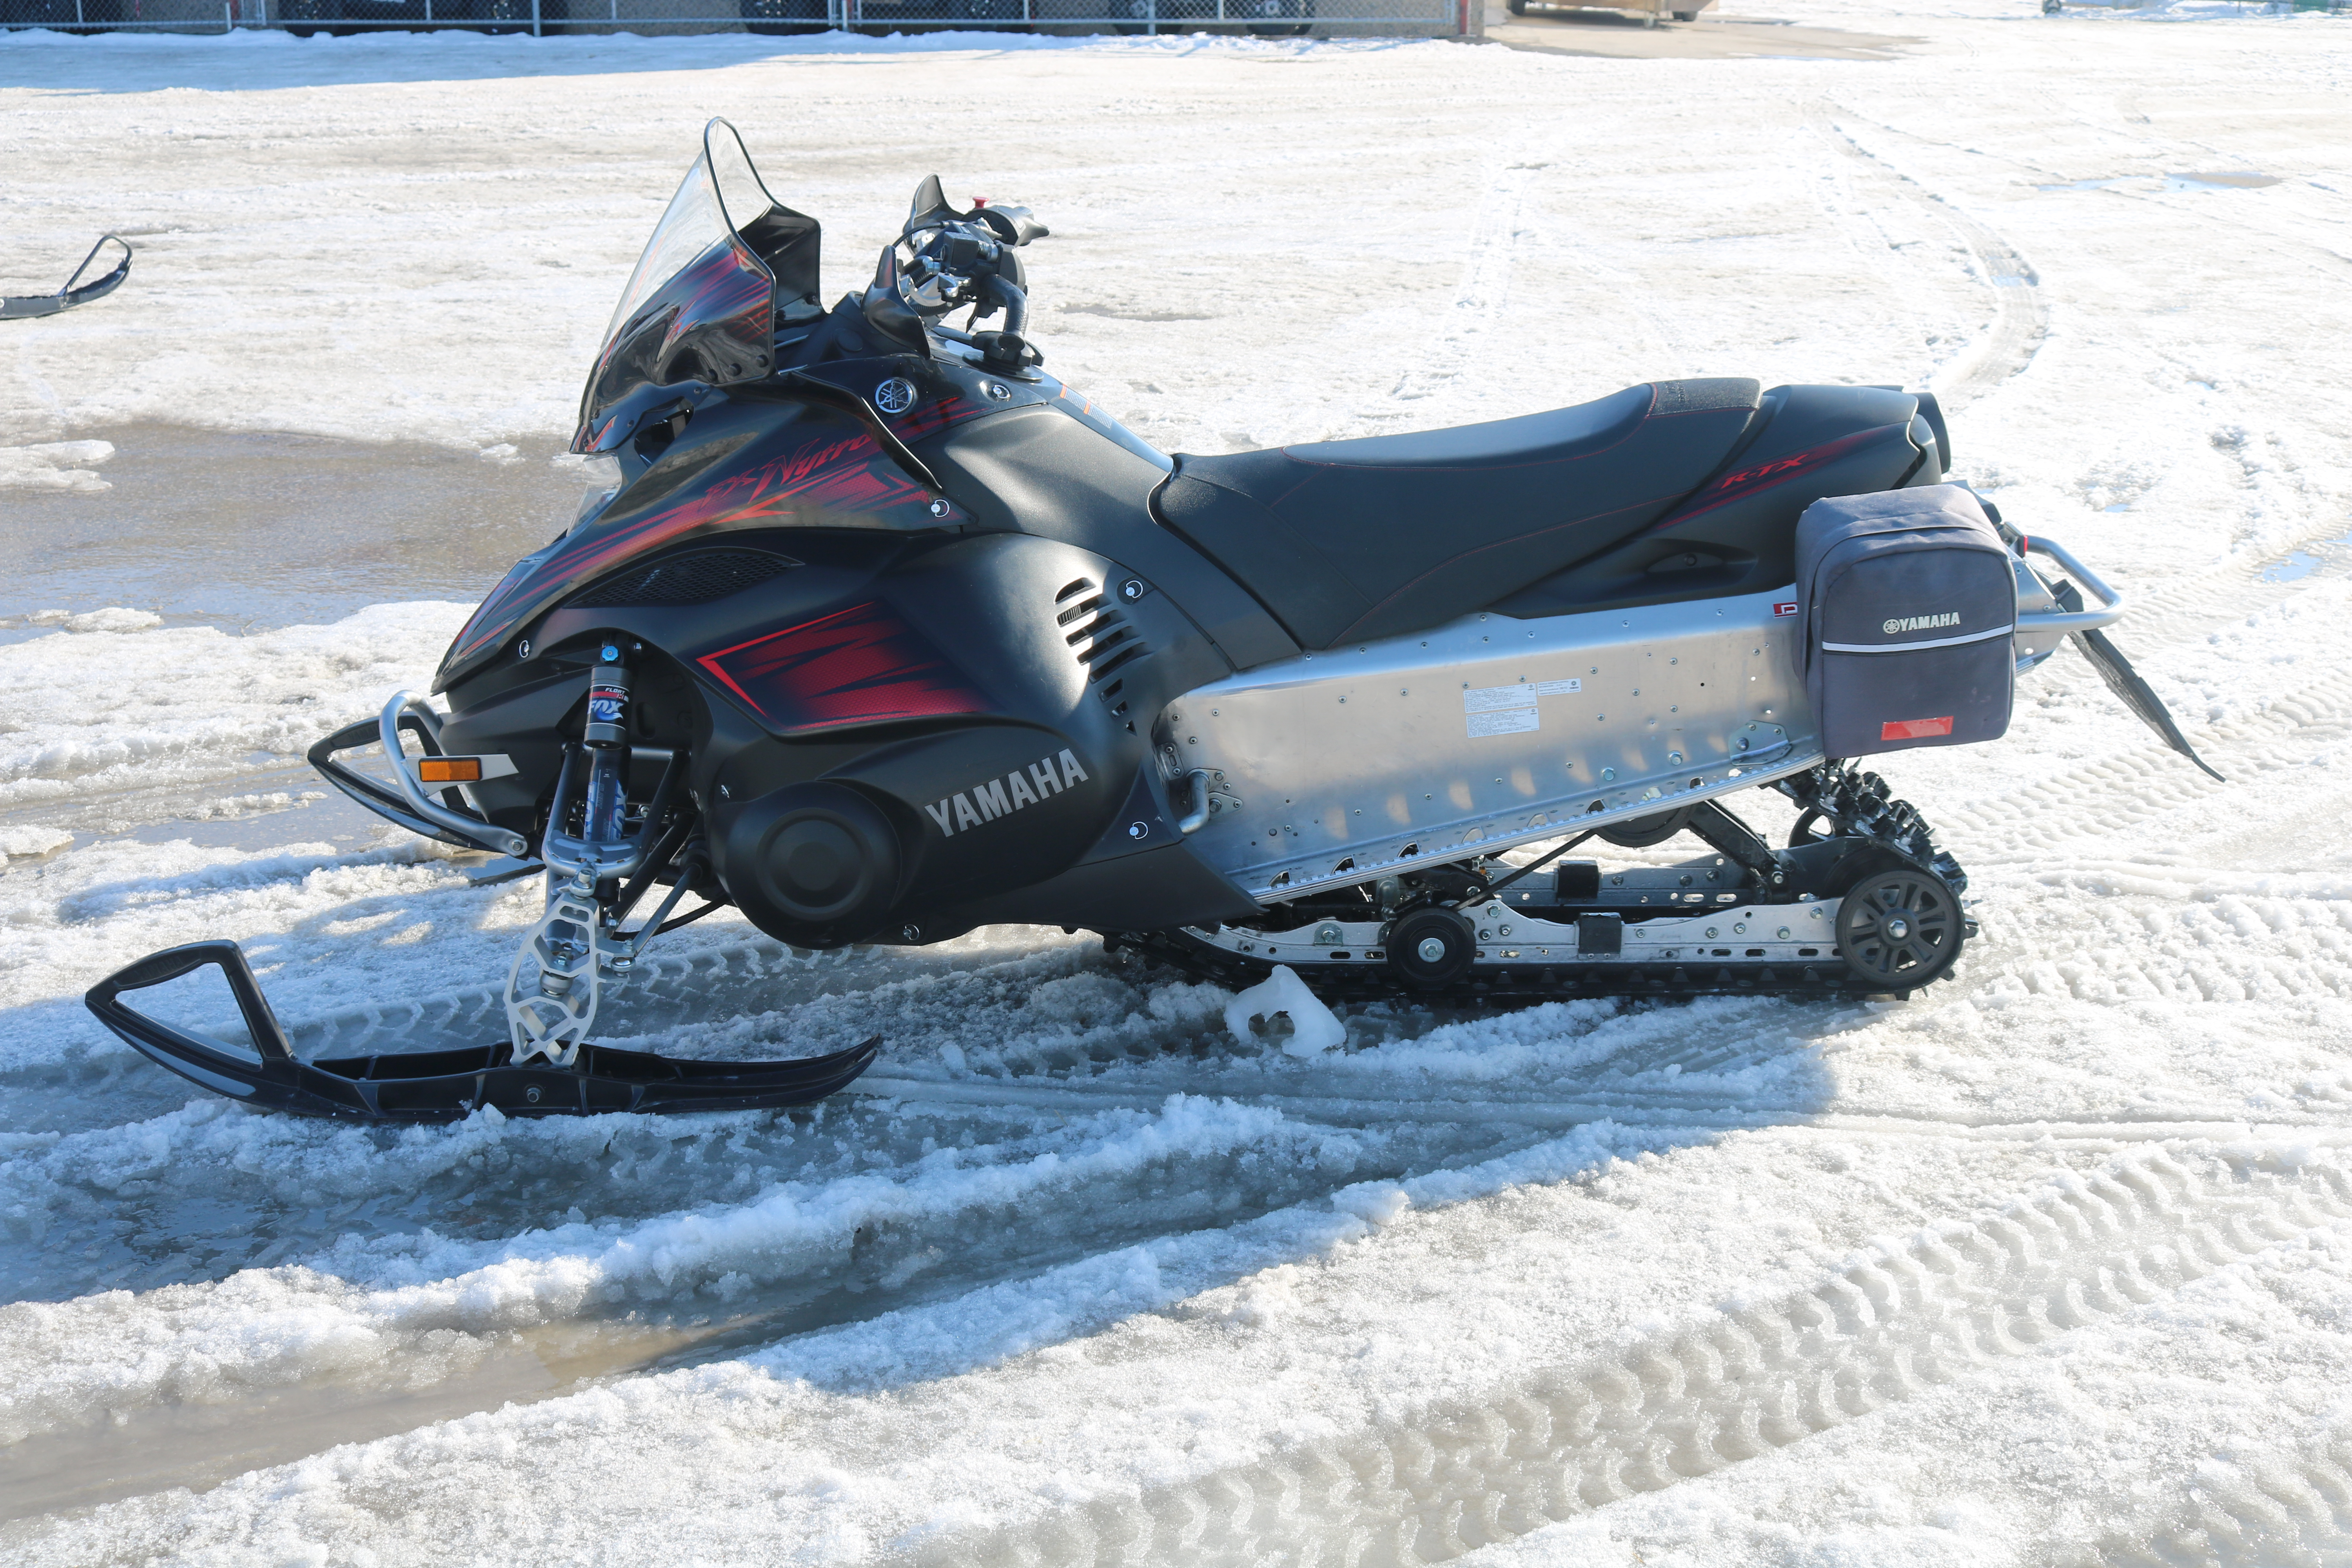 Pre-Owned 2011 Yamaha FX Nytro RTX SNOWMOBILE